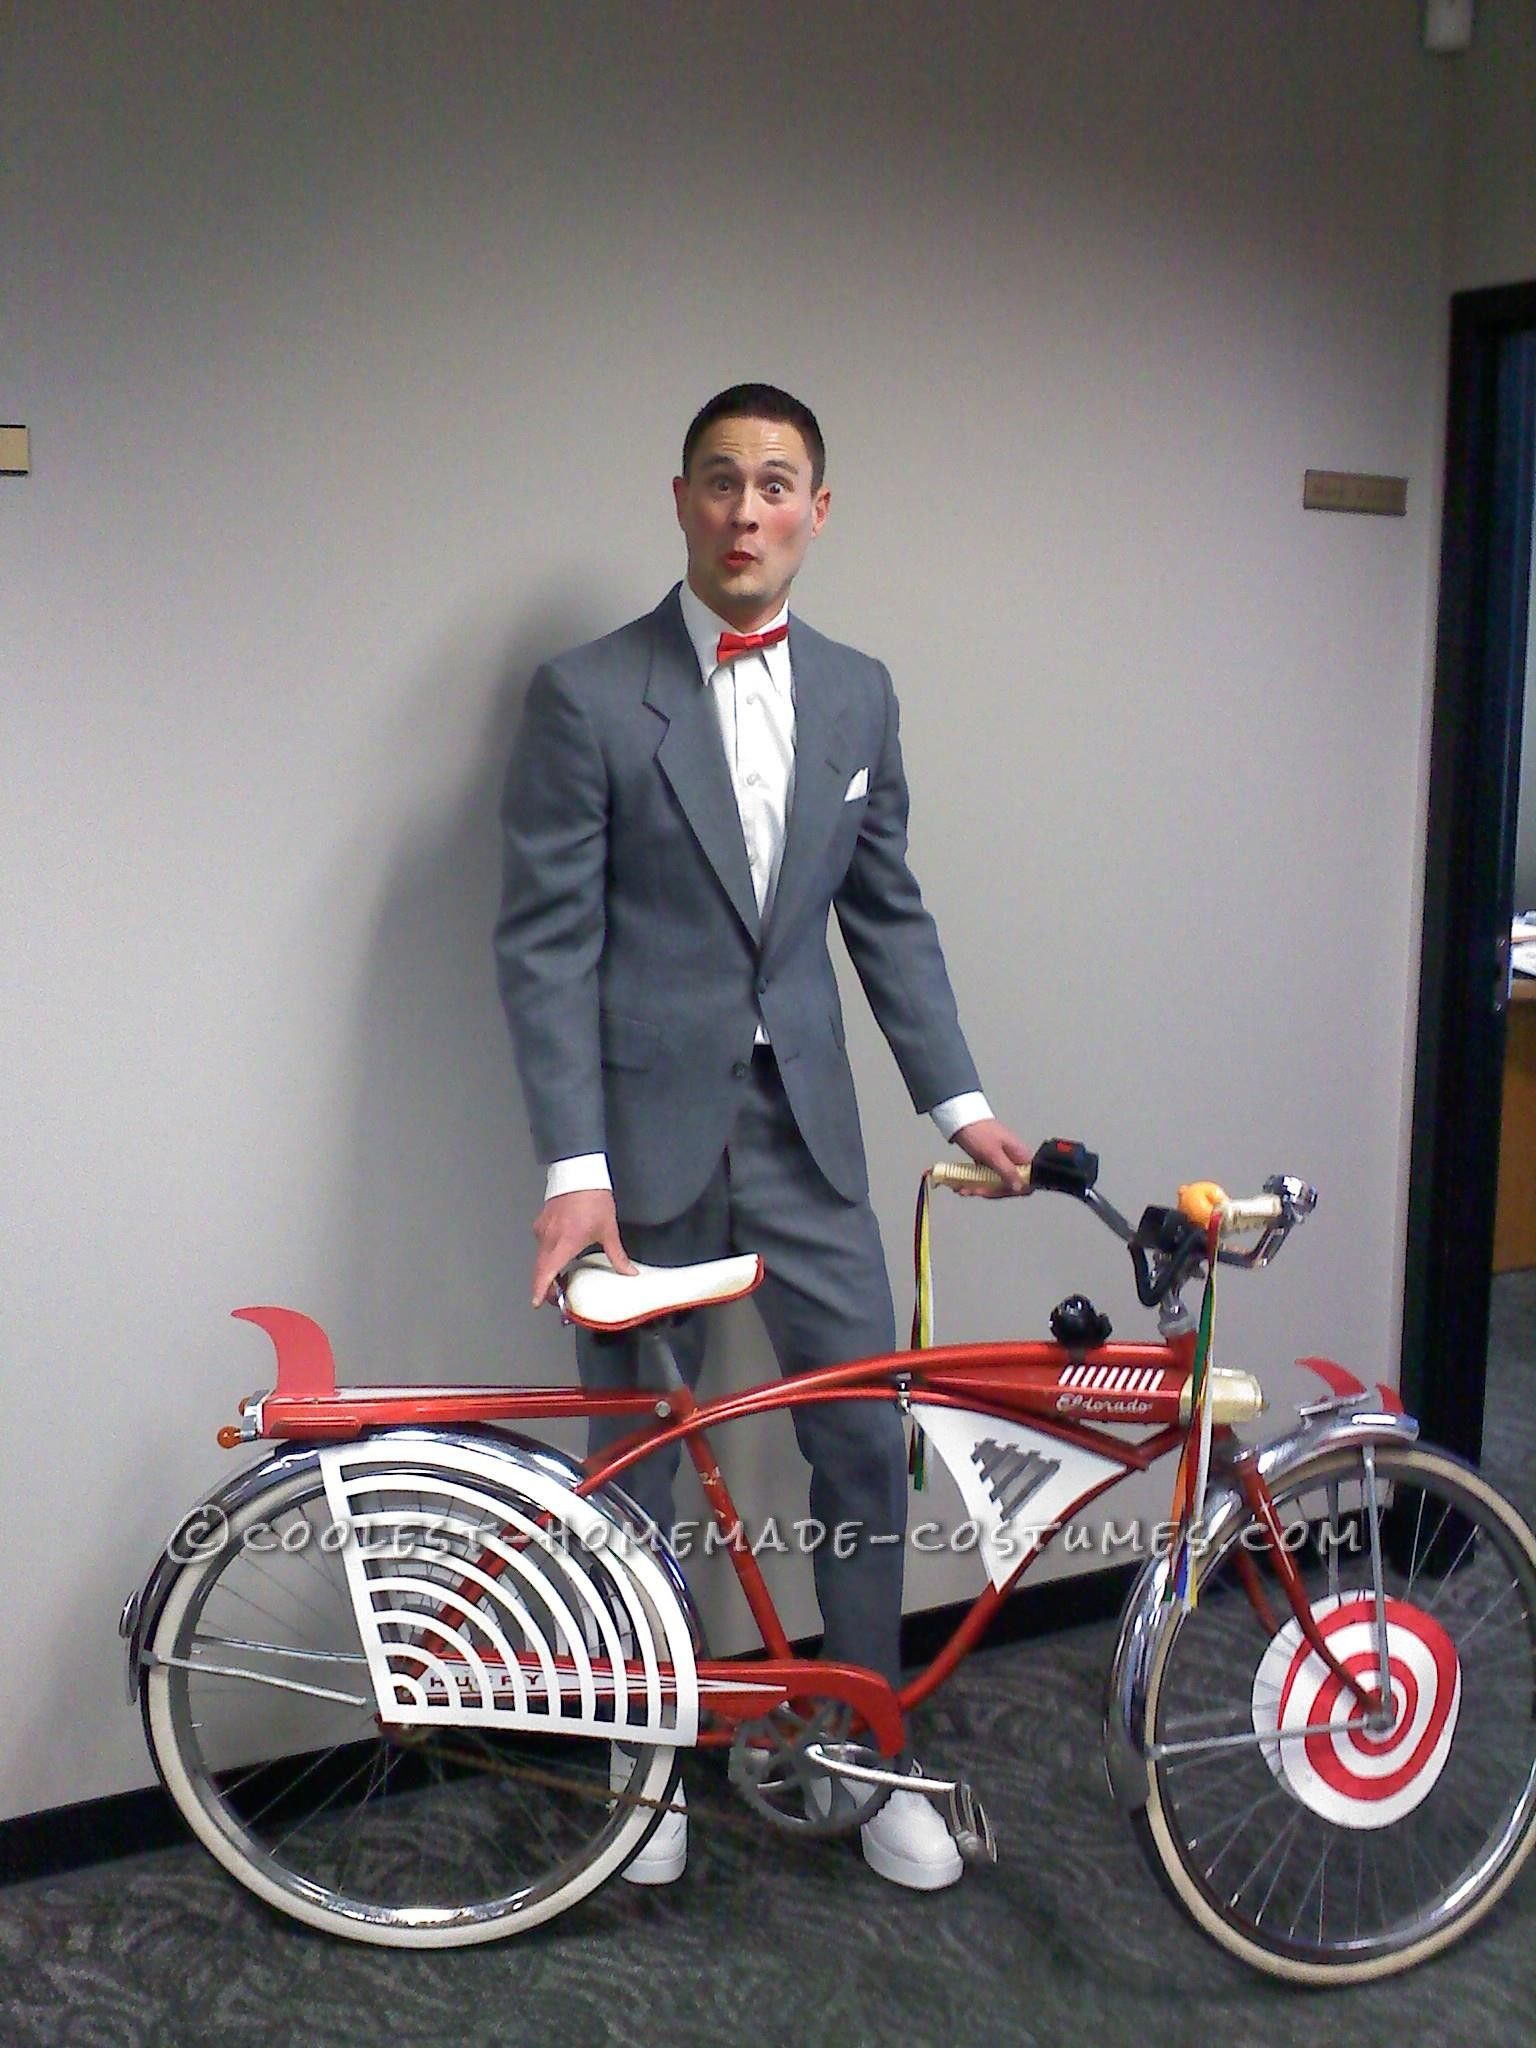 What A Cool (And Very Resembling) Pee Wee Herman Halloween